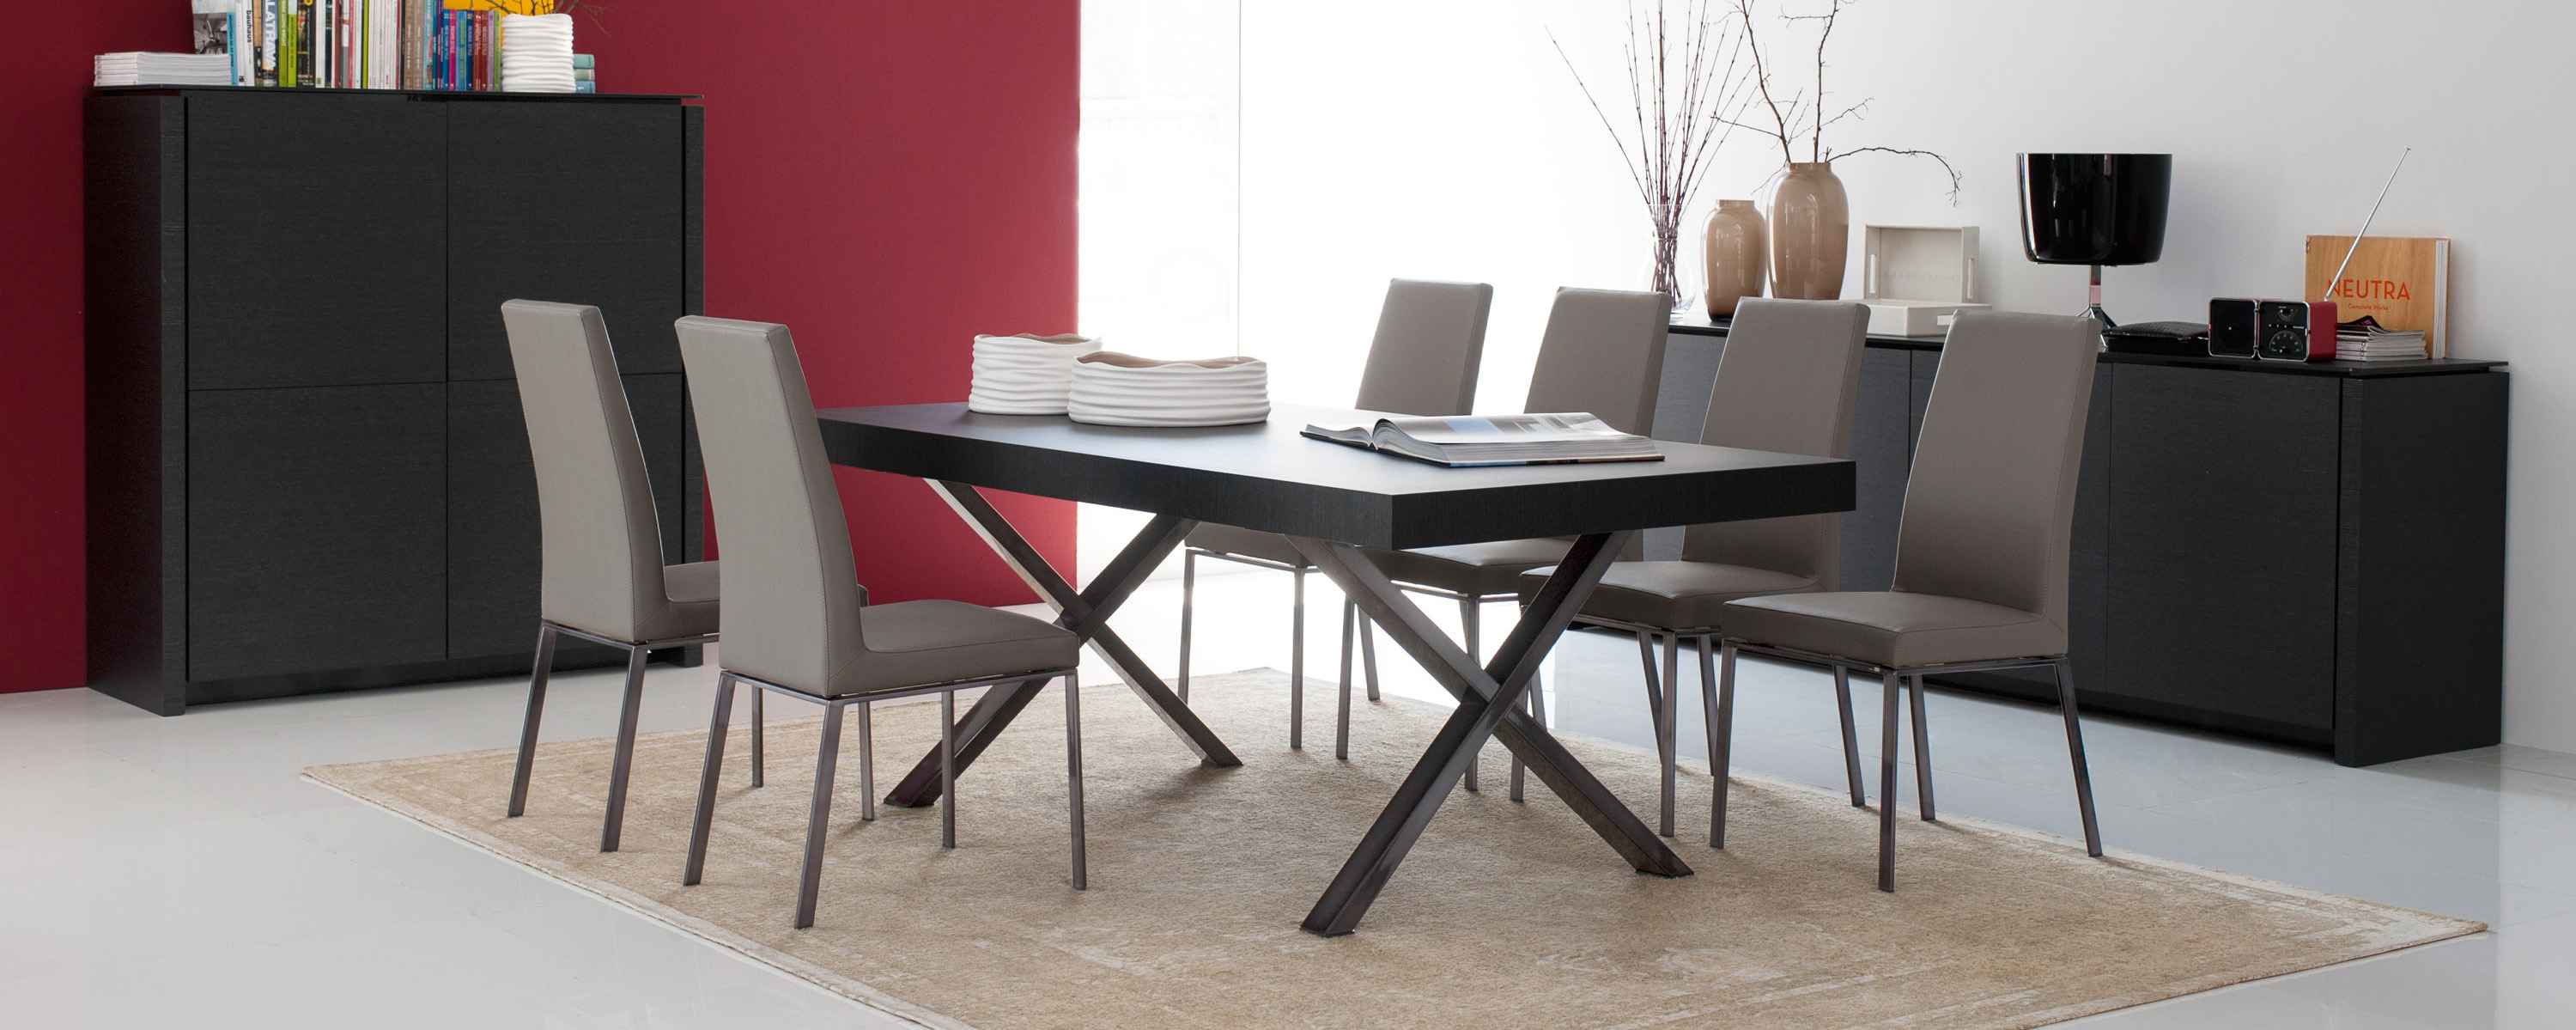 Superb img of Calligaris Axel Wood and Metal X Frame Extendable Dining Table  with #792F38 color and 3000x1199 pixels